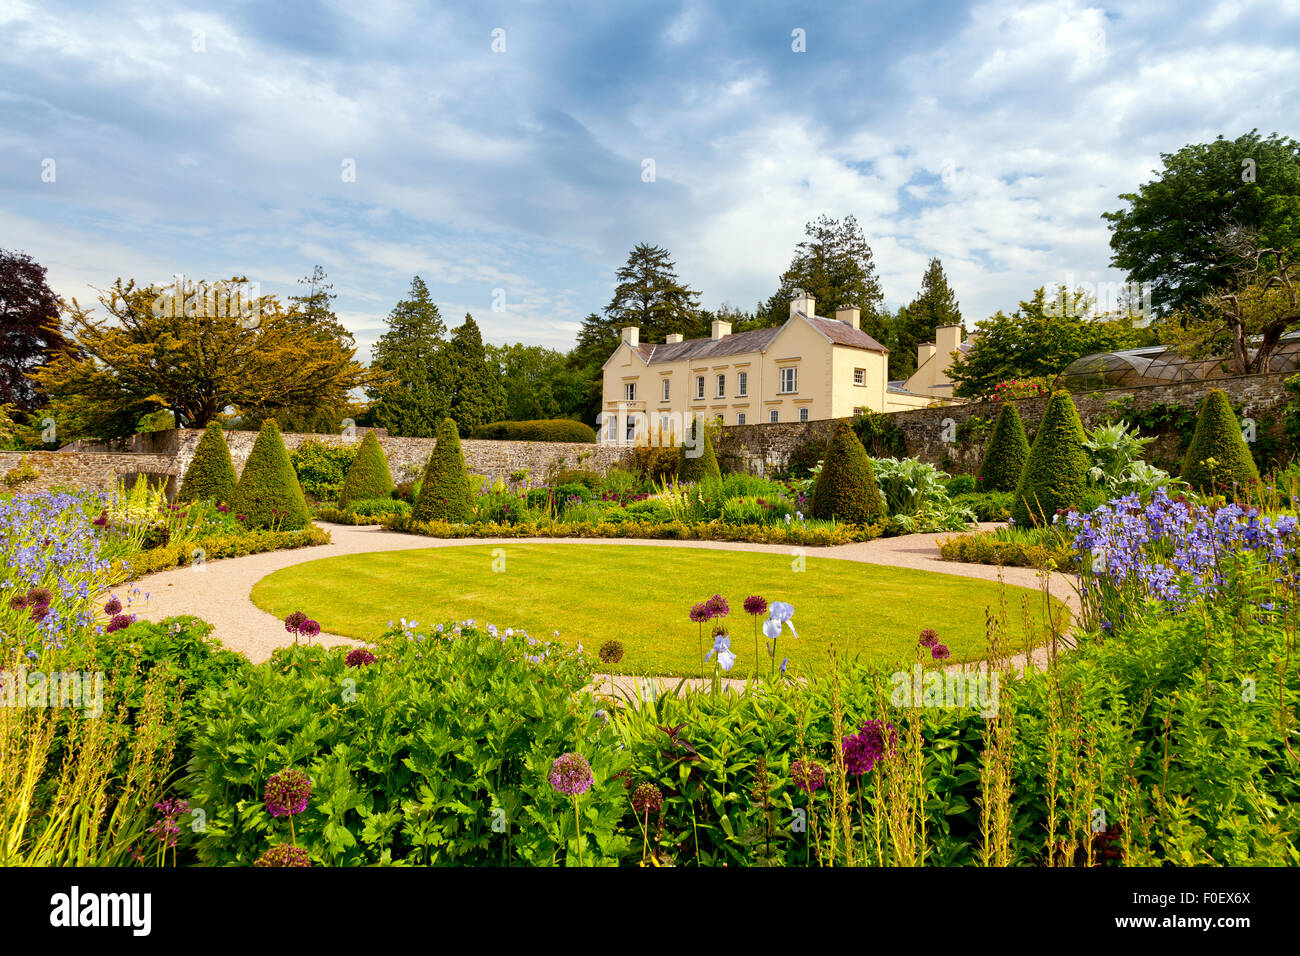 The house and upper walled garden at Aberglasney, Carmarthenshire, Wales, UK - Stock Image